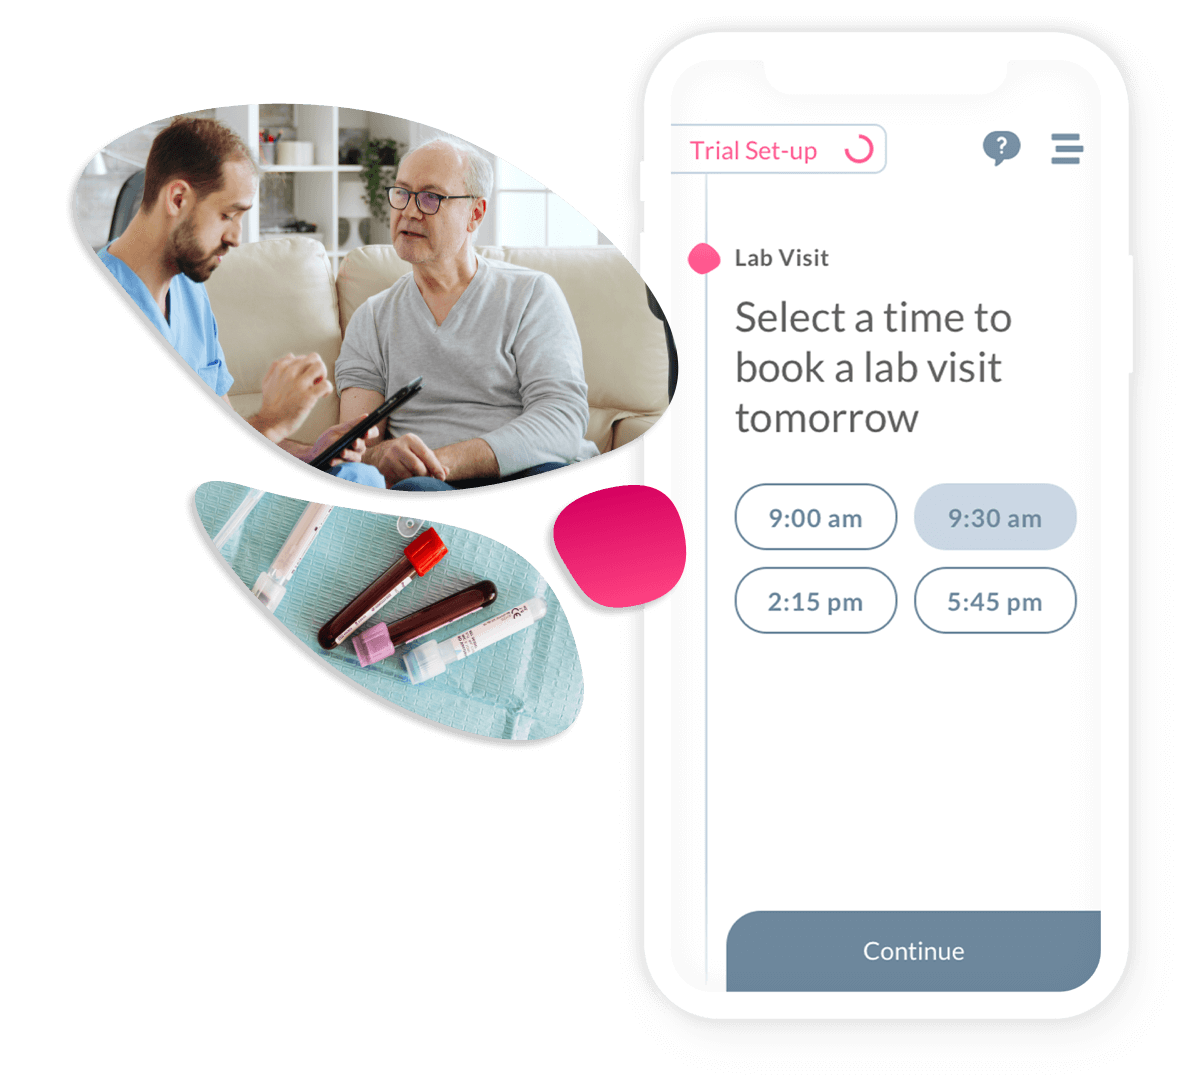 The Obvio App showing various times available for the participant to book a lab visit.